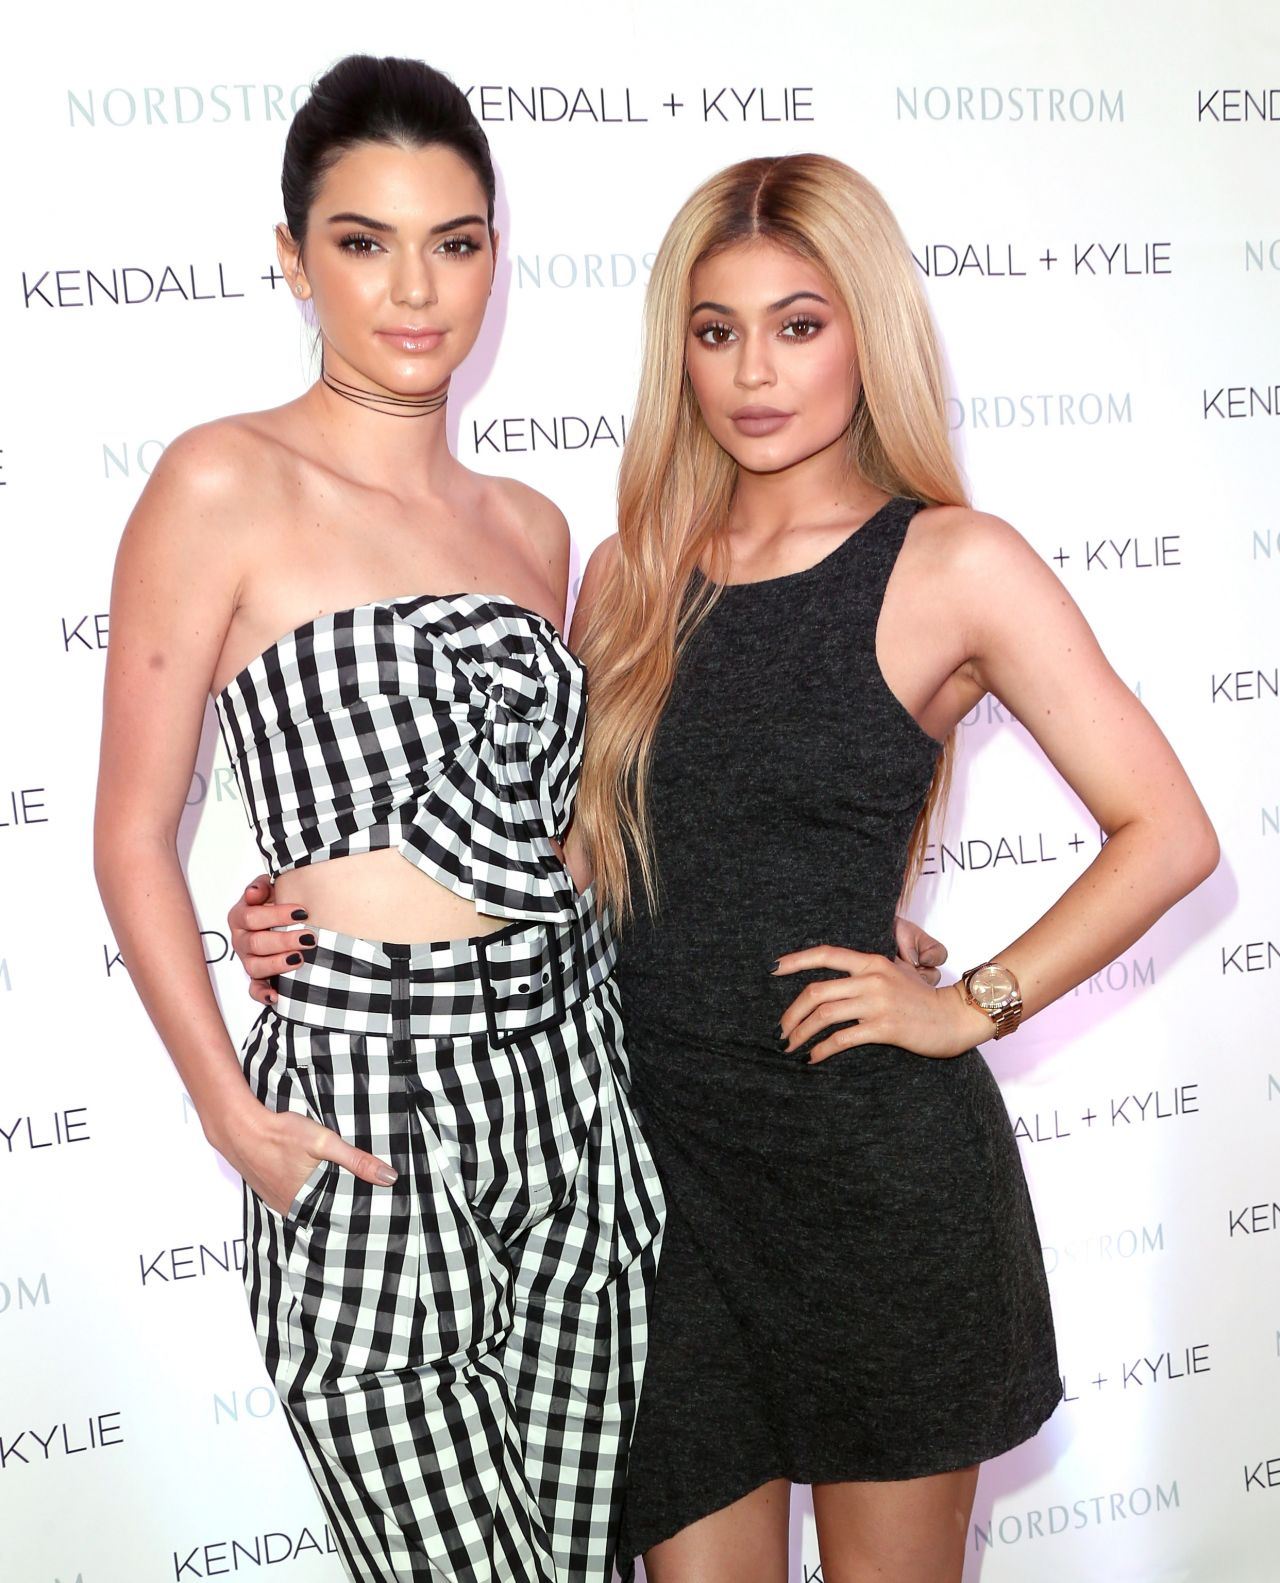 kendall and kylie jenner kendall kylie collection at. Black Bedroom Furniture Sets. Home Design Ideas